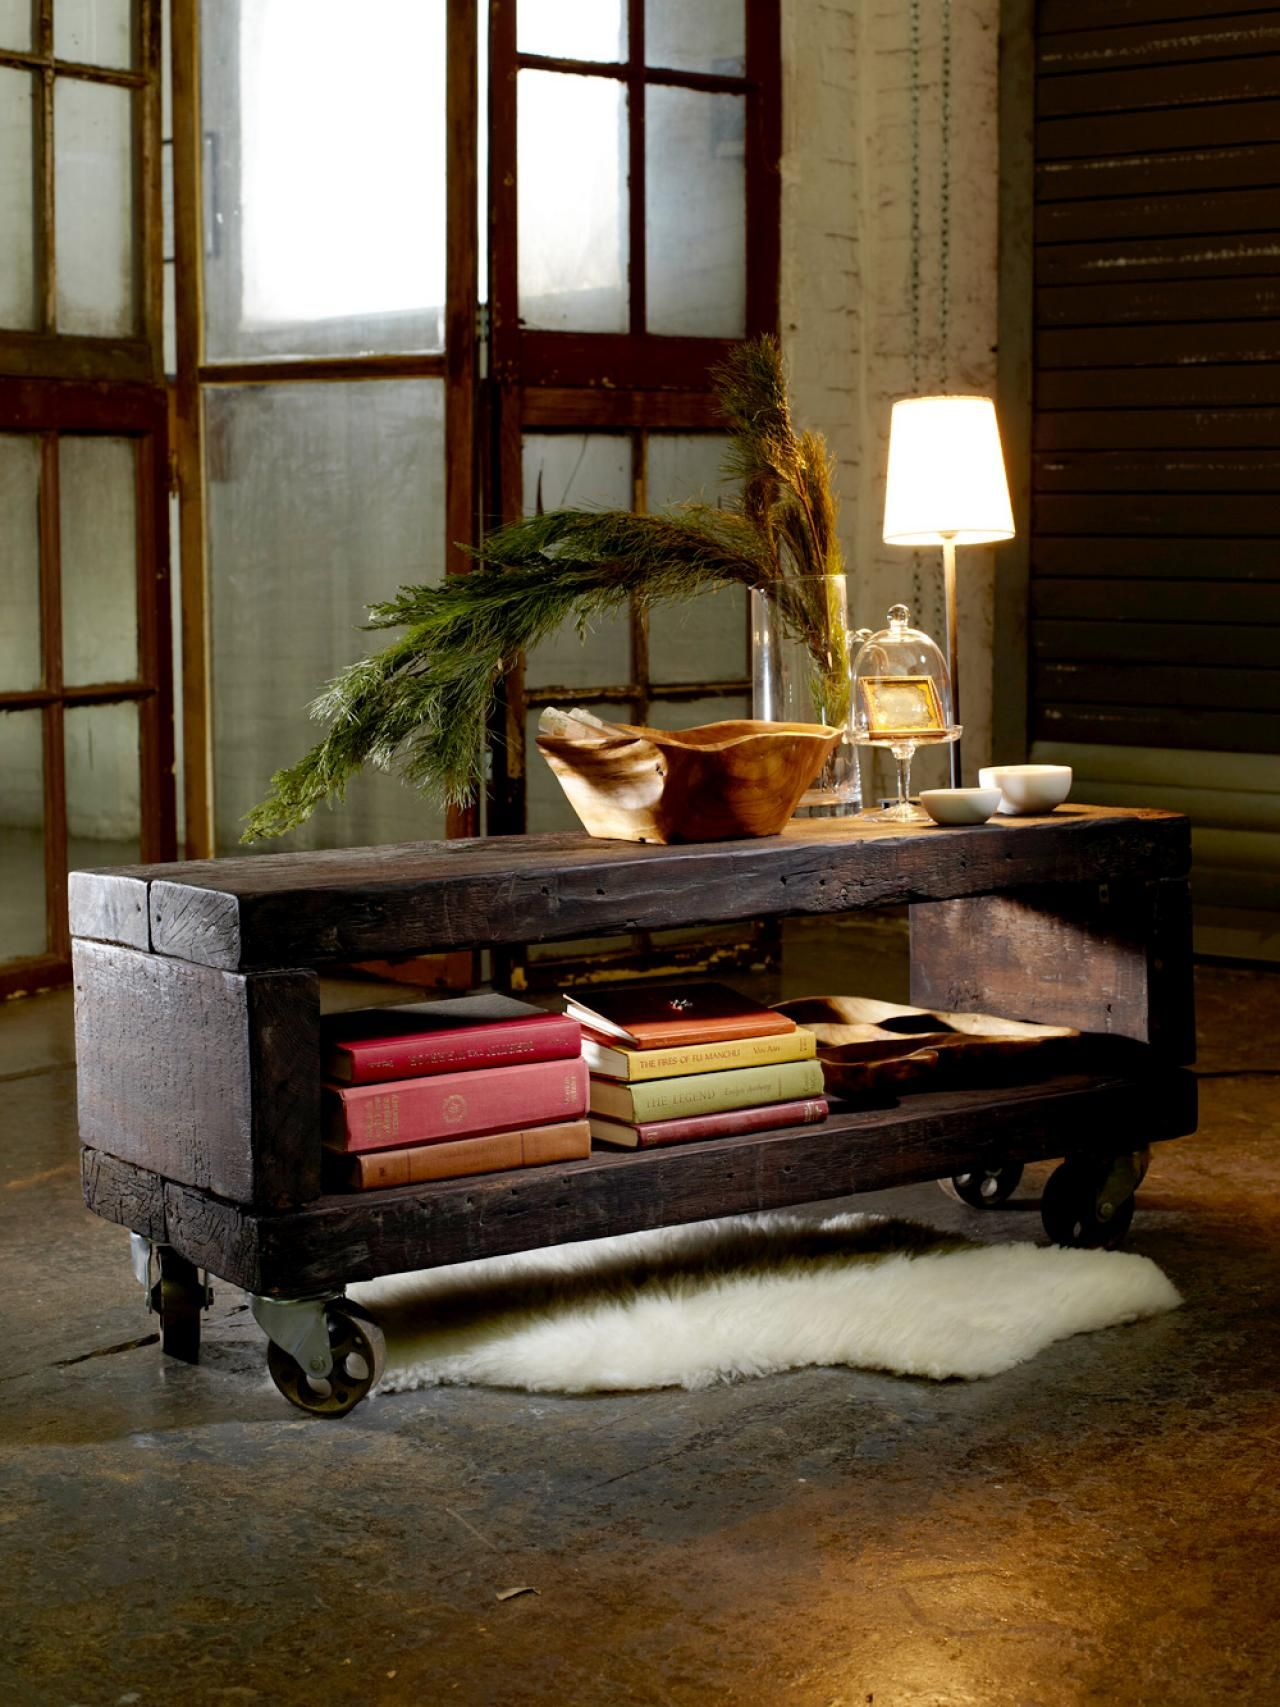 Superb Industrial Reclaimed Wood Coffee Table 12 Gorgeous DIY Coffee And Buffet Style  Tables. Seeing The White Rug Gave Me The Idea Of Lighting Under The Table  To ...